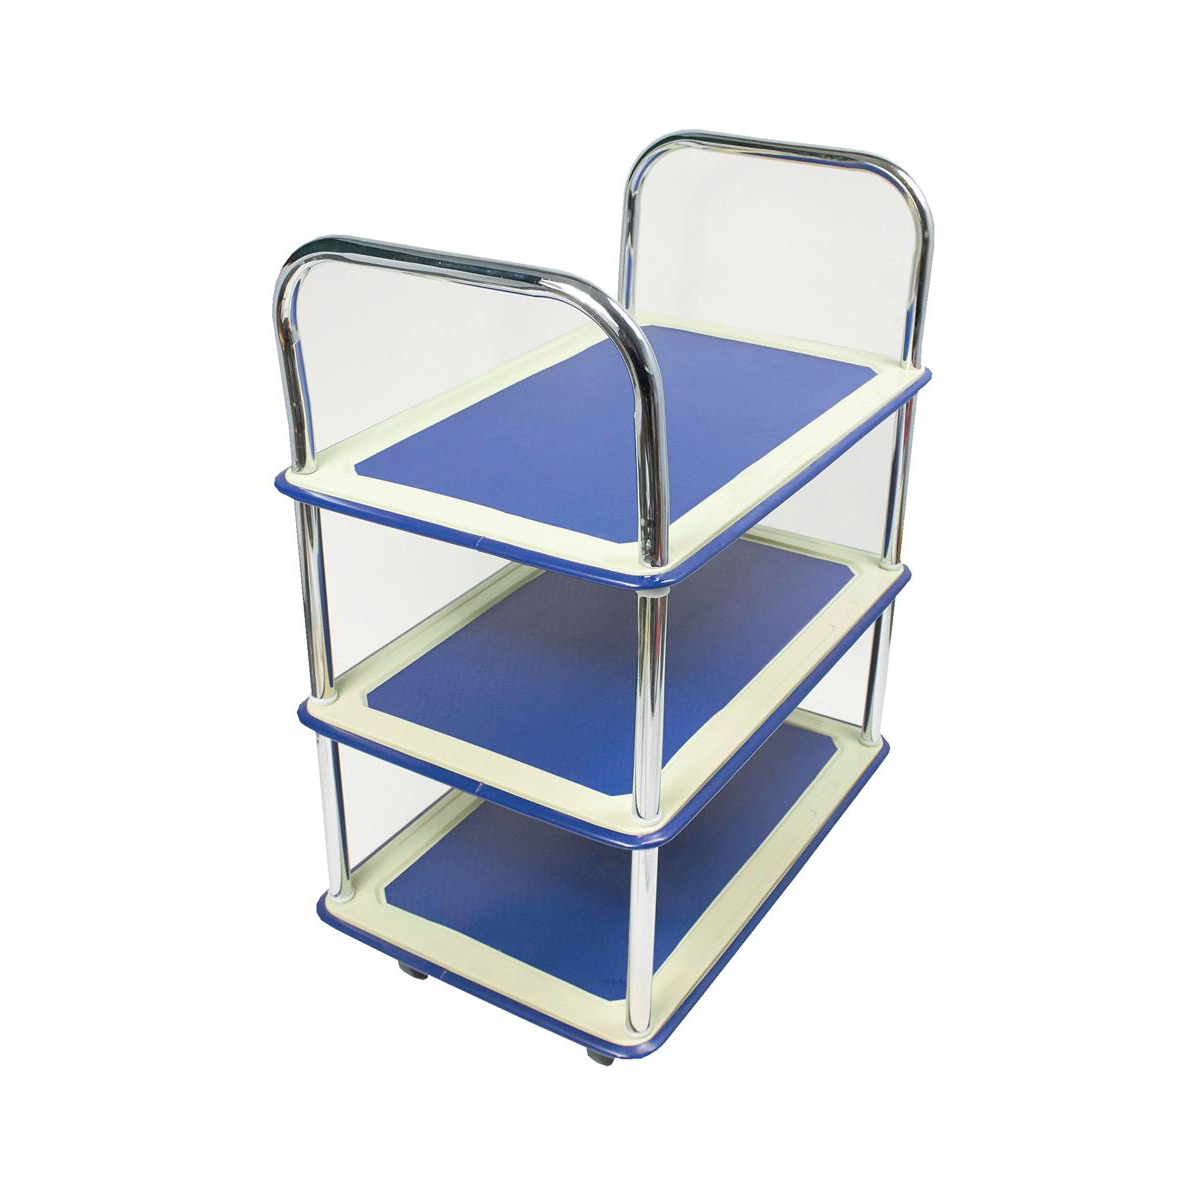 5 Star Facilities Trolley Lightweight Steel Frame 3 Shelf Capacity 120kg Chrome W470xD725xH950mm